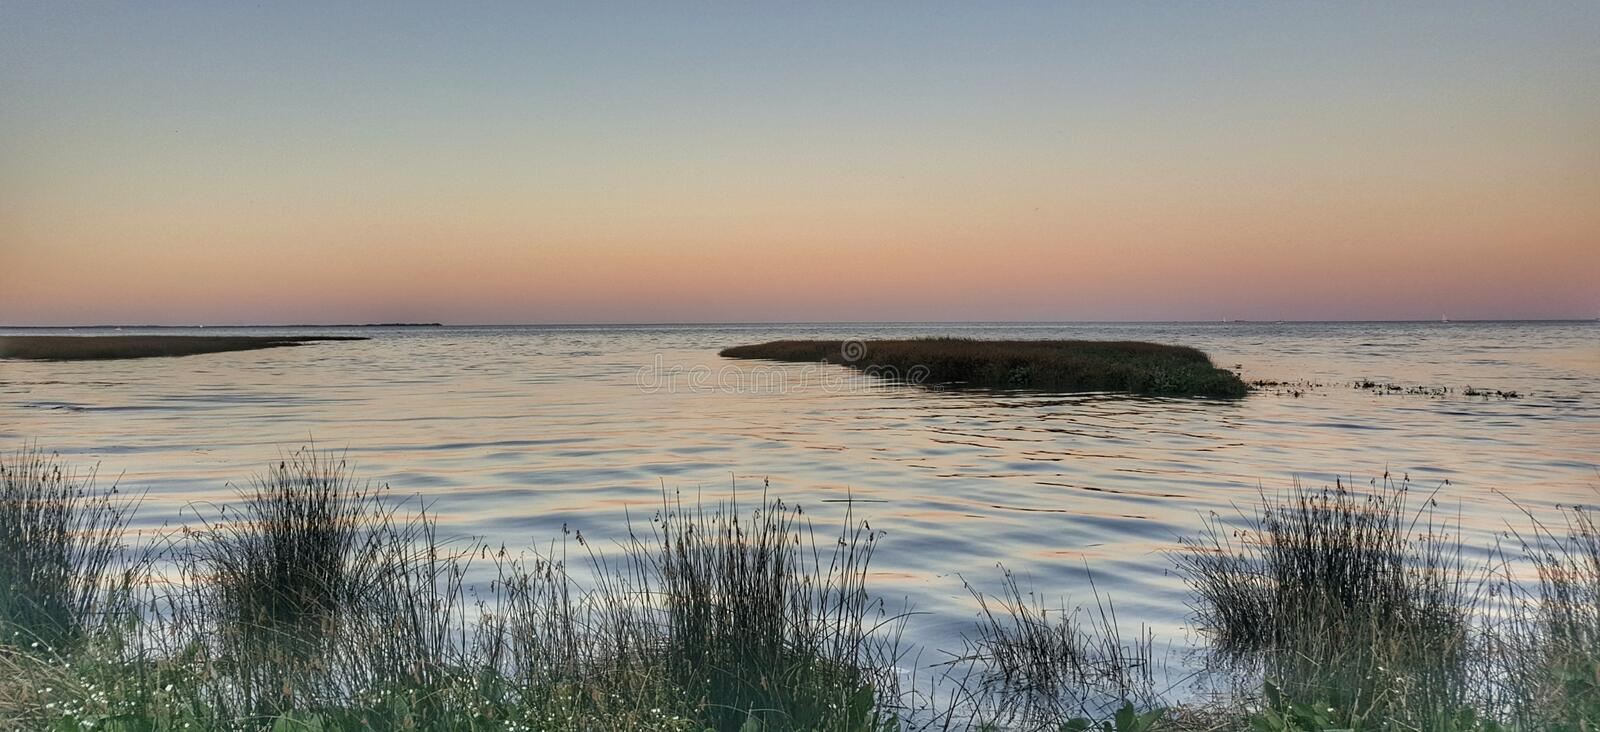 Sunset sky blue and orange and calm river water nature outdoors royalty free stock photography